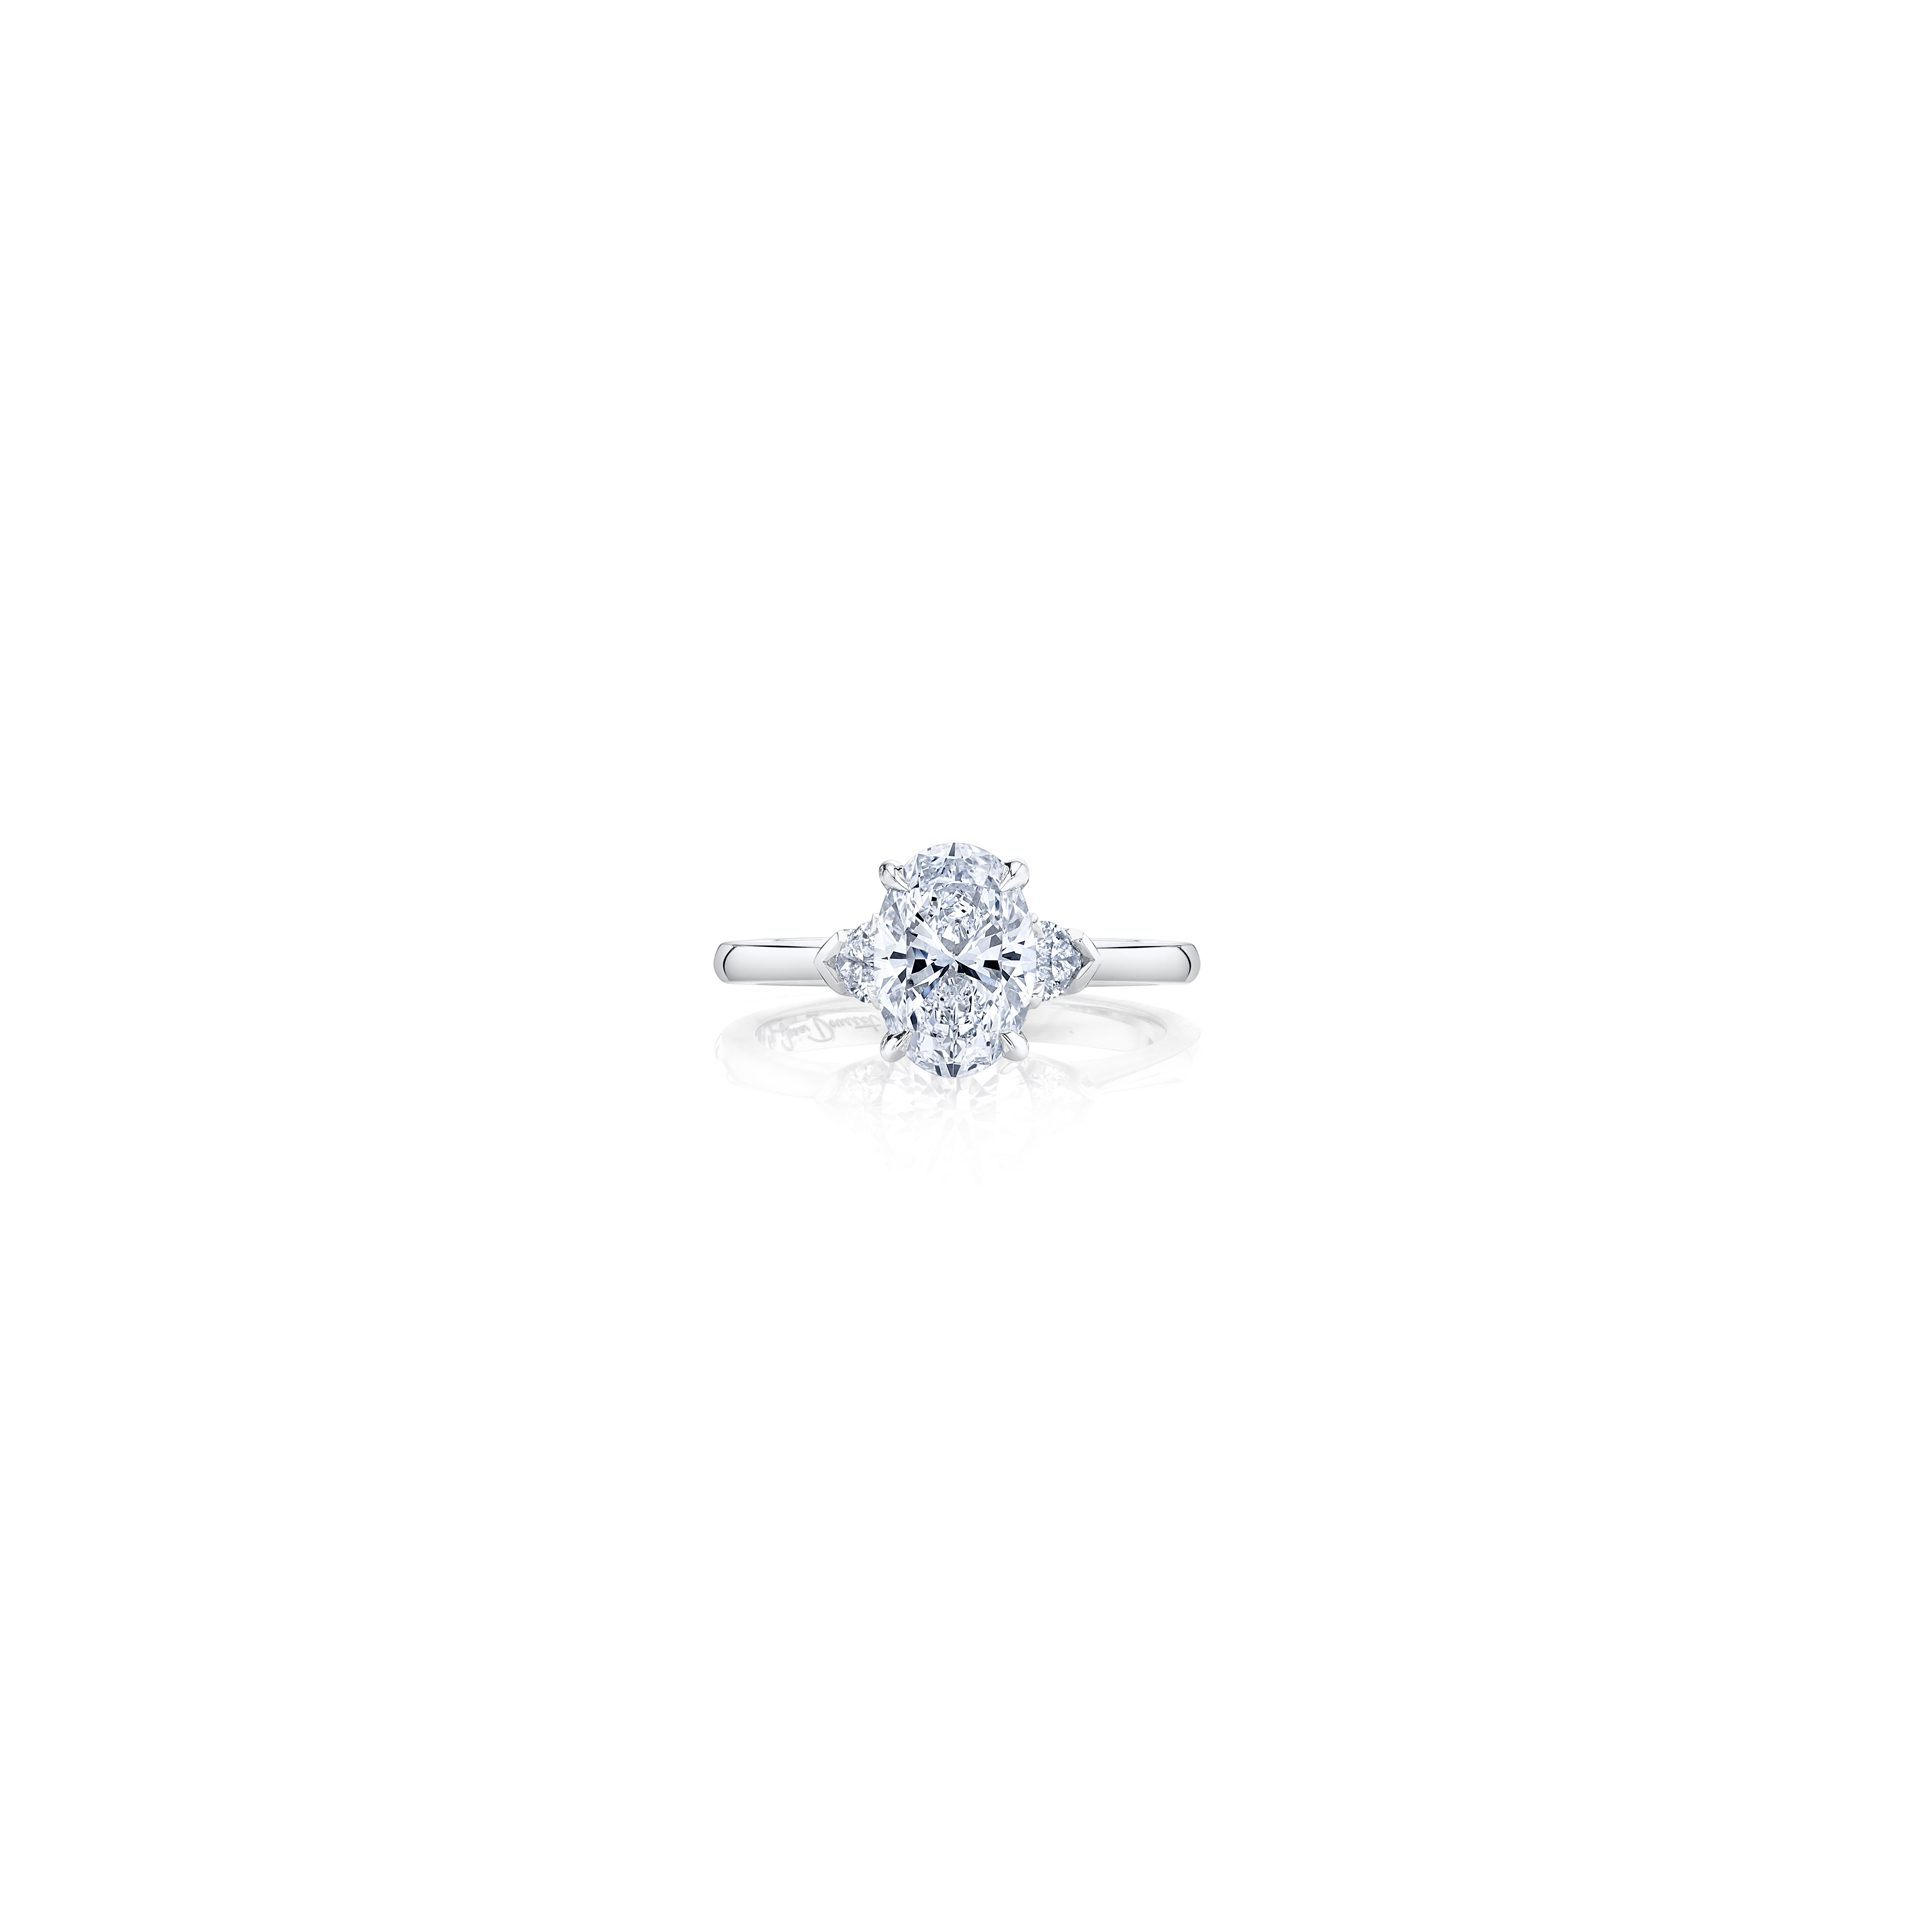 Claire Oval Three Stone Engagement Ring with heart-shaped diamond side stones in 18k White Gold Front View by Oui by Jean Dousset